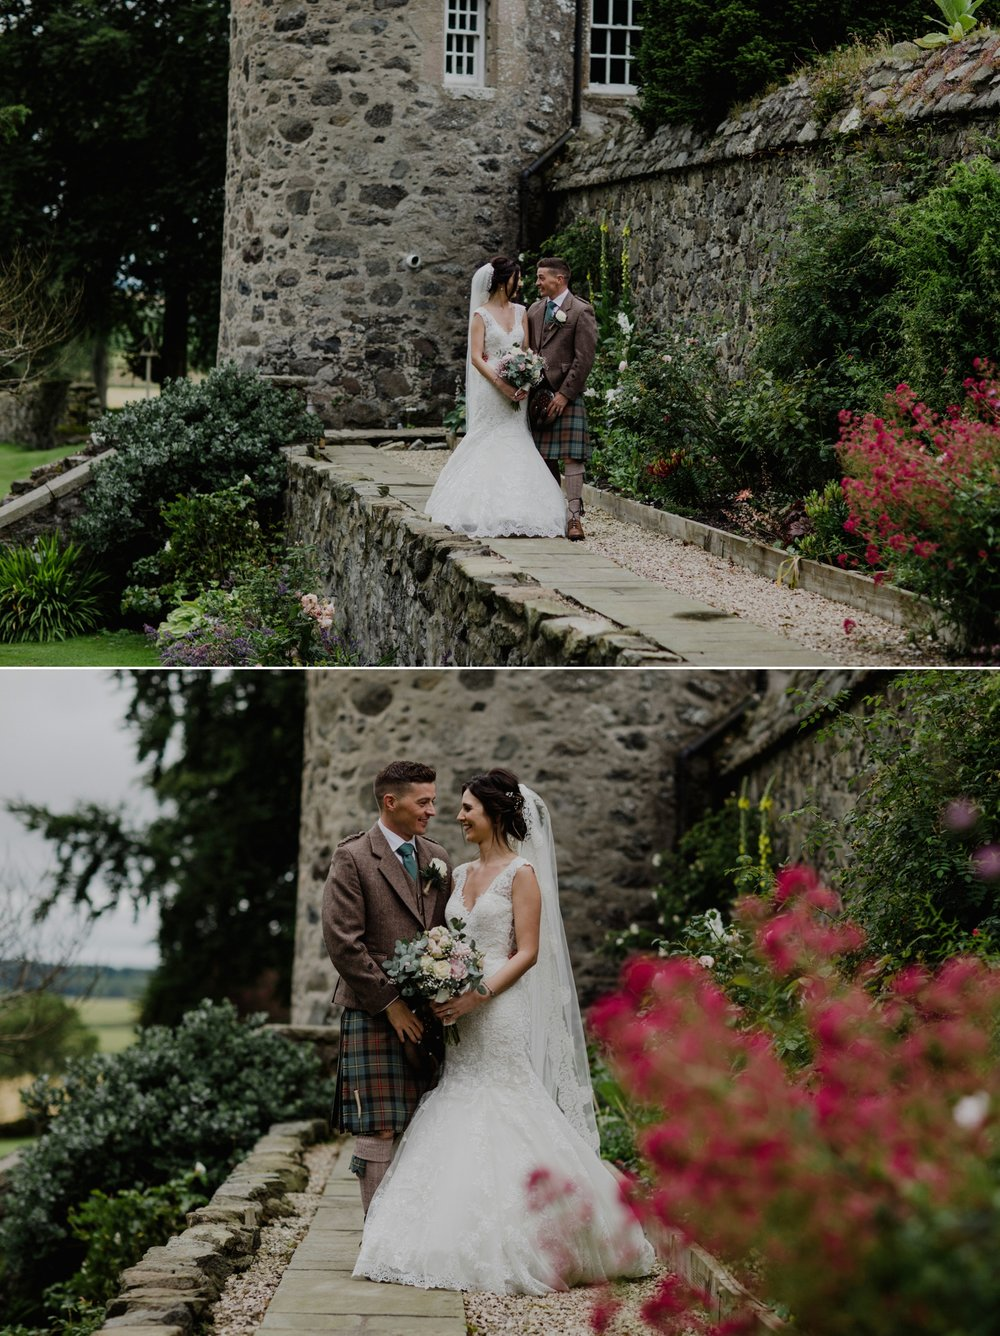 ELLIE_GARY_BARRA_CASTLE_WEDDING_ZOE_ALEXANDRA_PHOTOGRAPHY-0393.jpg